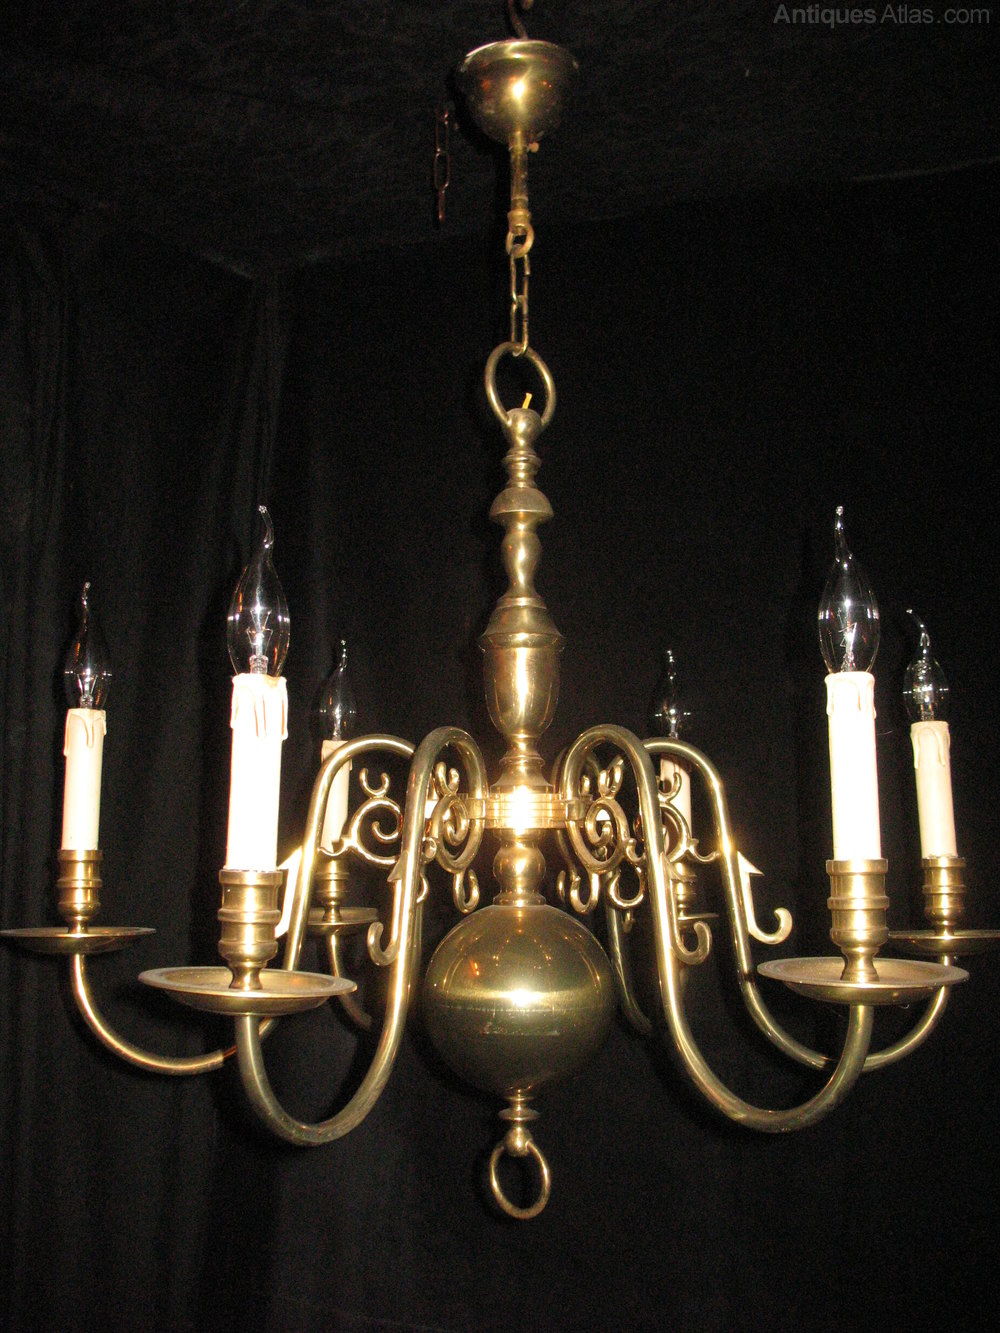 Here We Have A Very Good Quality Pair Brass Flemish Six Light Chandeliers They Aged Well Over The Years And Now Colour Patina